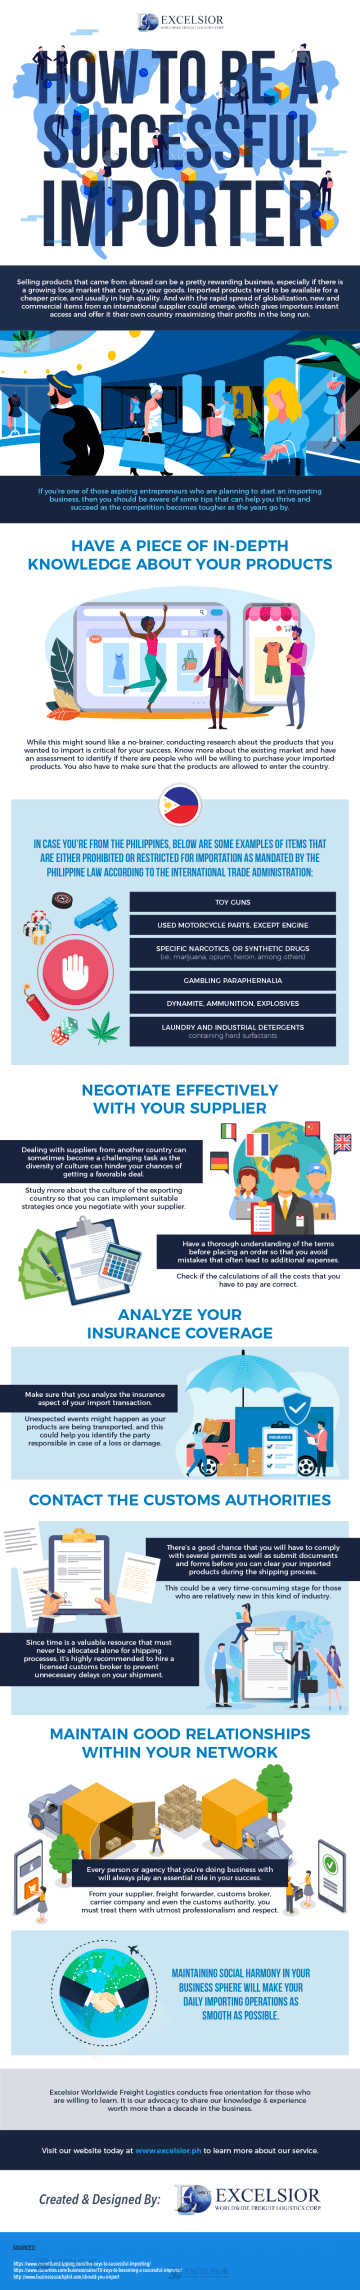 How to Be a Successful Importer - Infographic